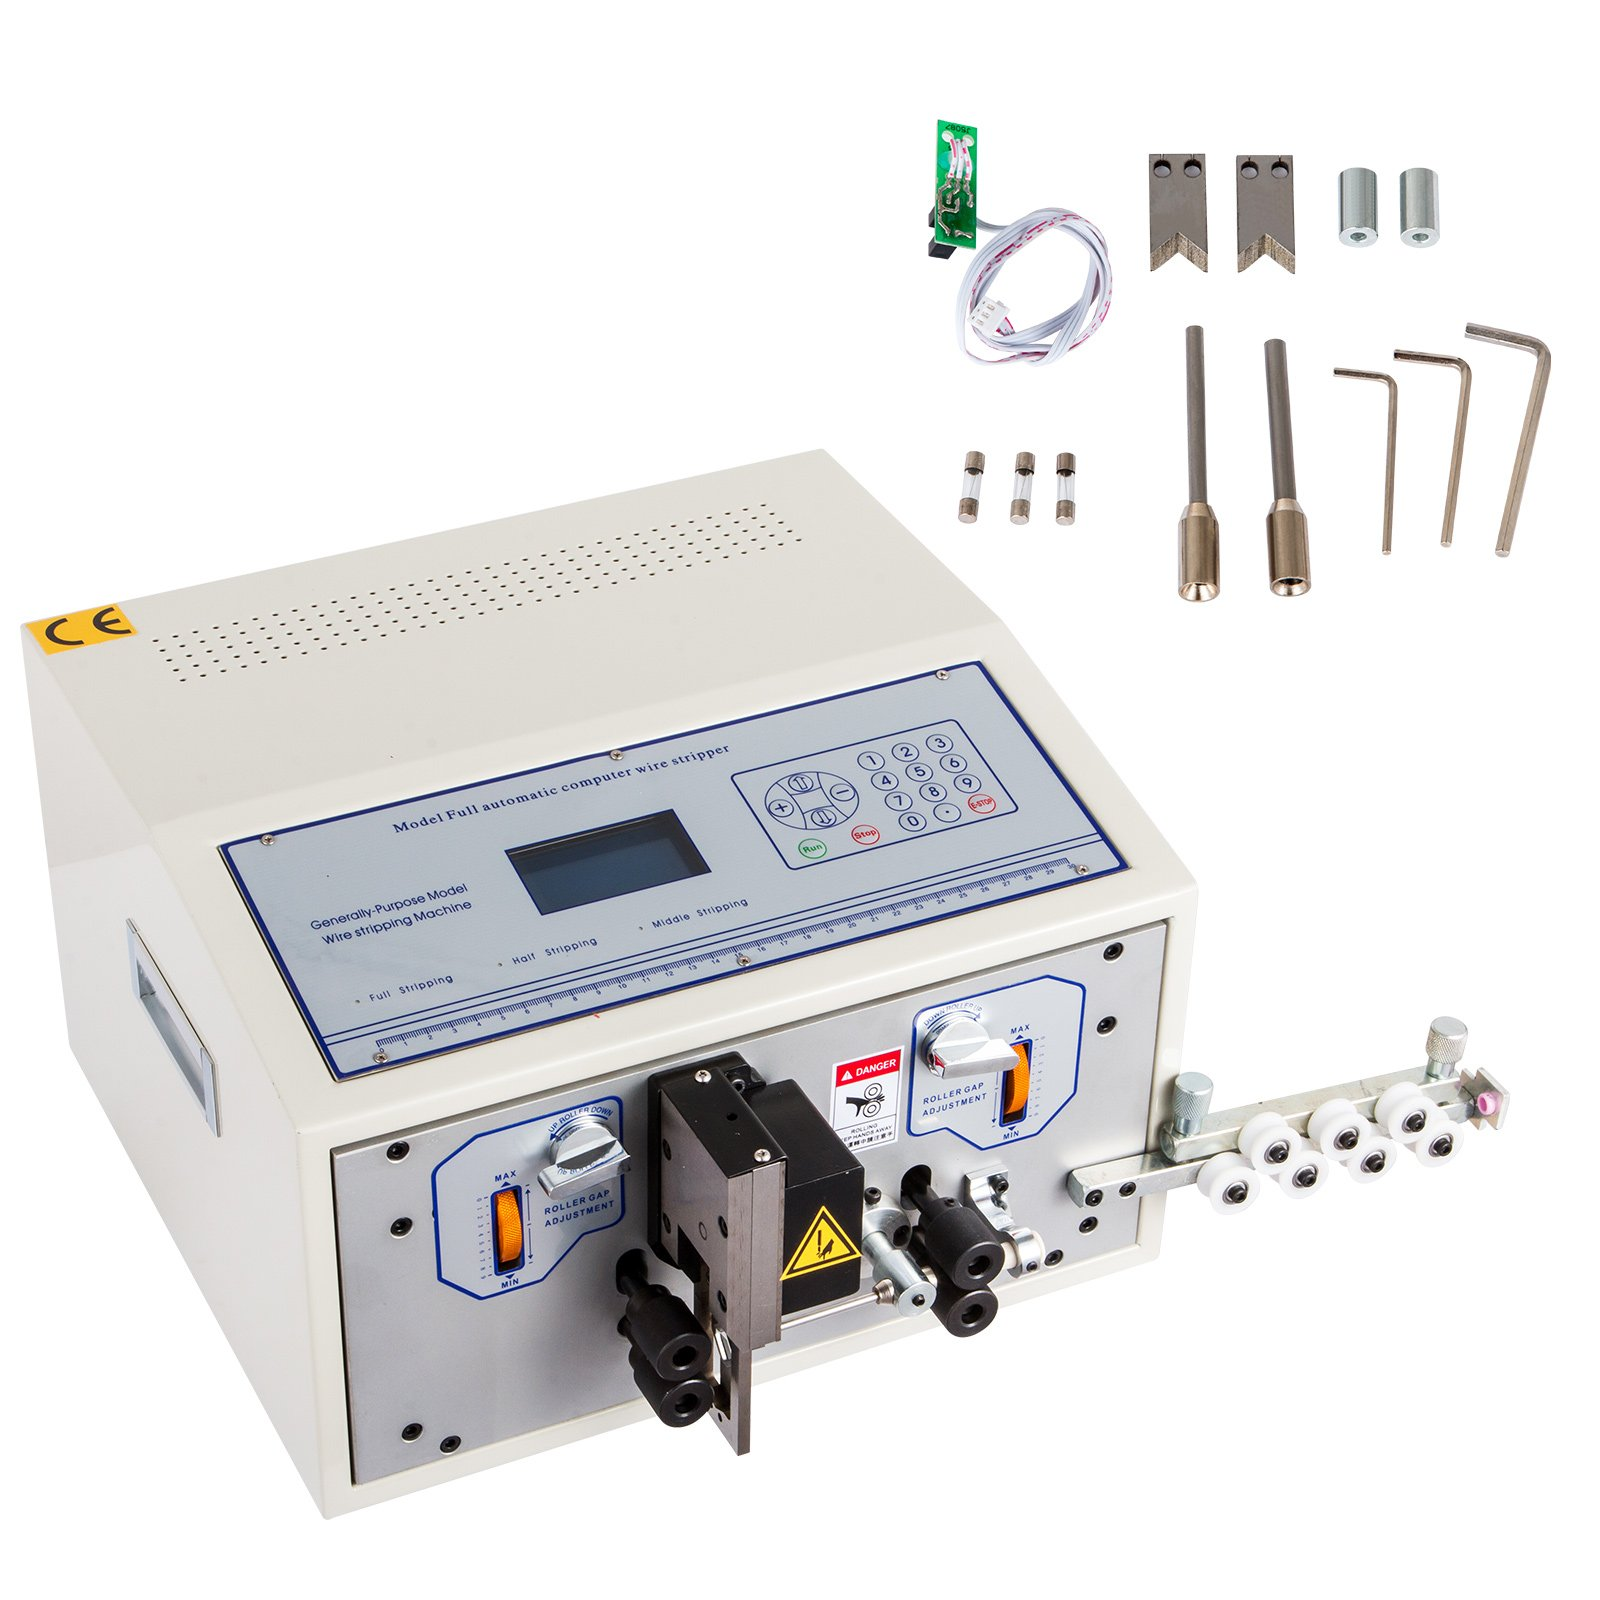 BestEquip Cable Wire Stripping Machine 1mm-9999mm Diameter Wire Stripping Machine 1 Cutting Blade Electric Wire Stripper for cutting and Stripping Scrap Copper Wire (SWT508-SD4.5 1mm-9999mm)